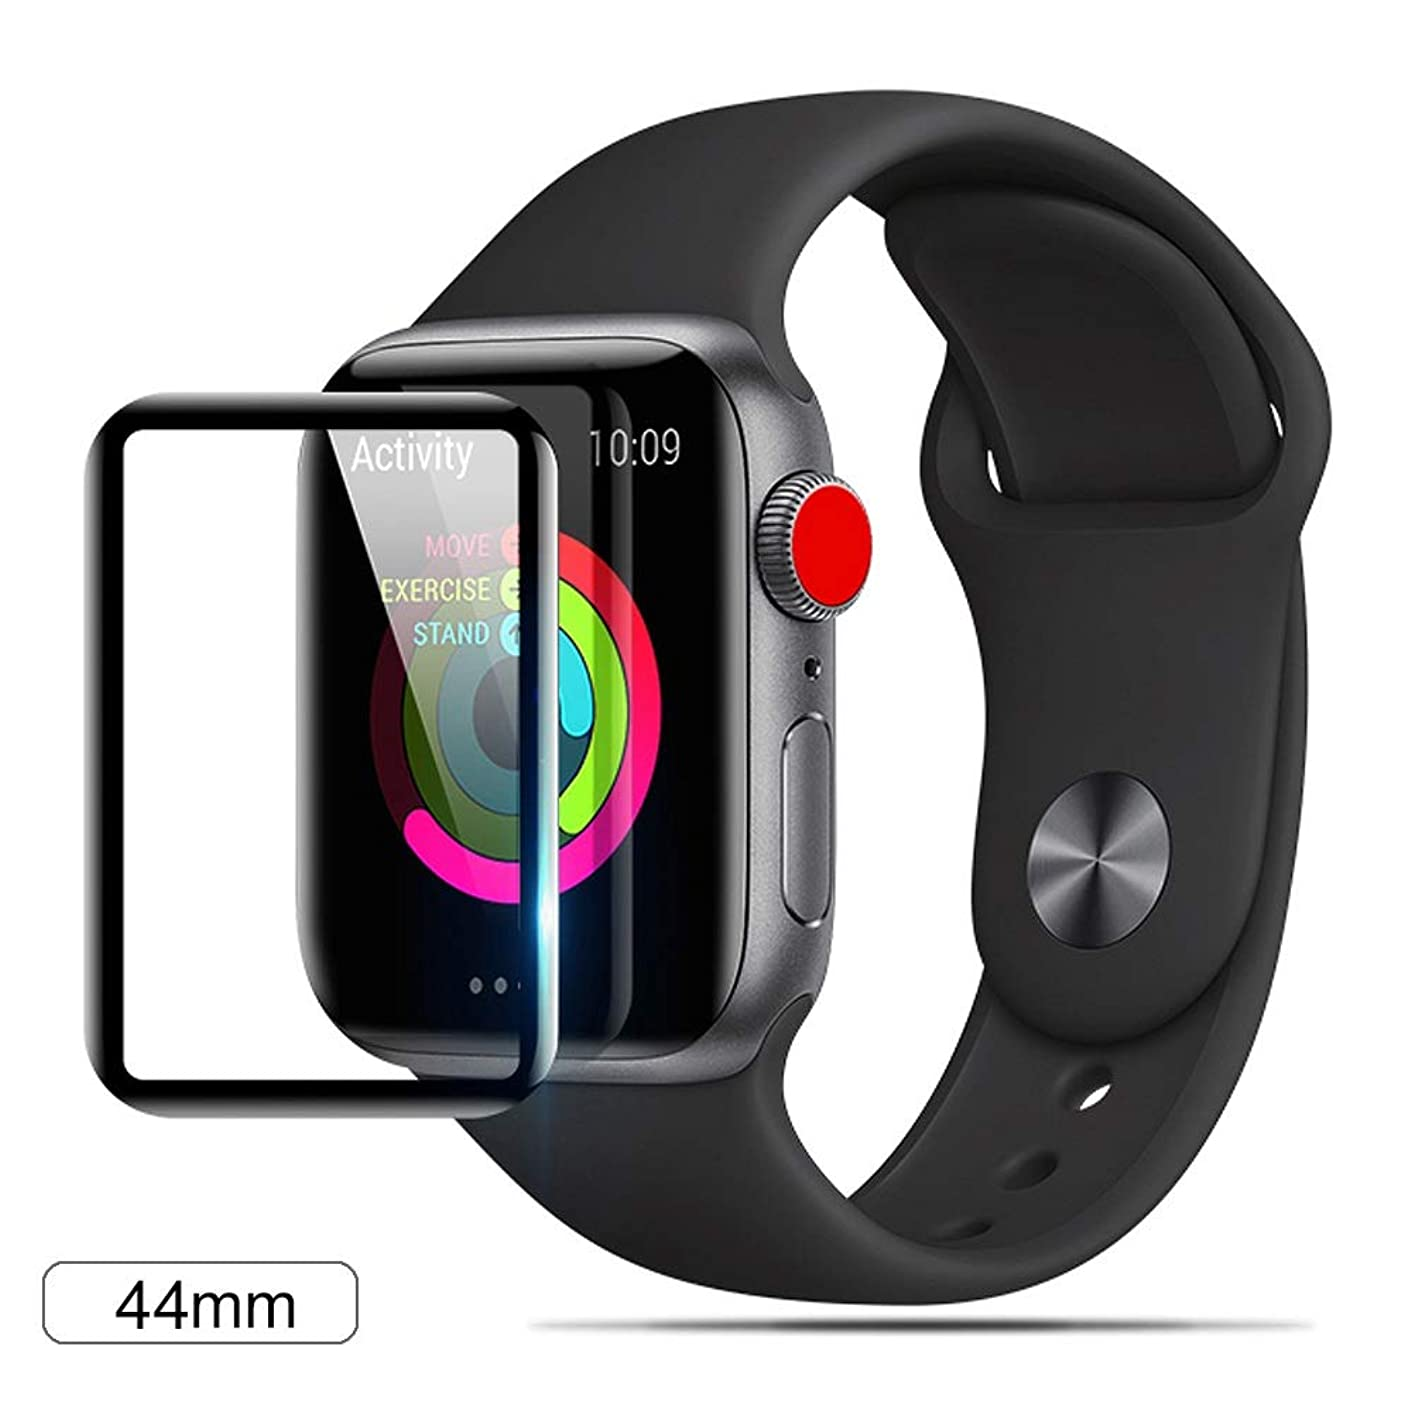 YCFlying Apple Watch Series 4 (44mm) Screen Protector, 3D Curved[2019 Upgrade Version] HD Tempered Glass Screen Film 9H Hardness Anti-Scratch Protective Film, for Apple Watch Series 4 (44mm) Black